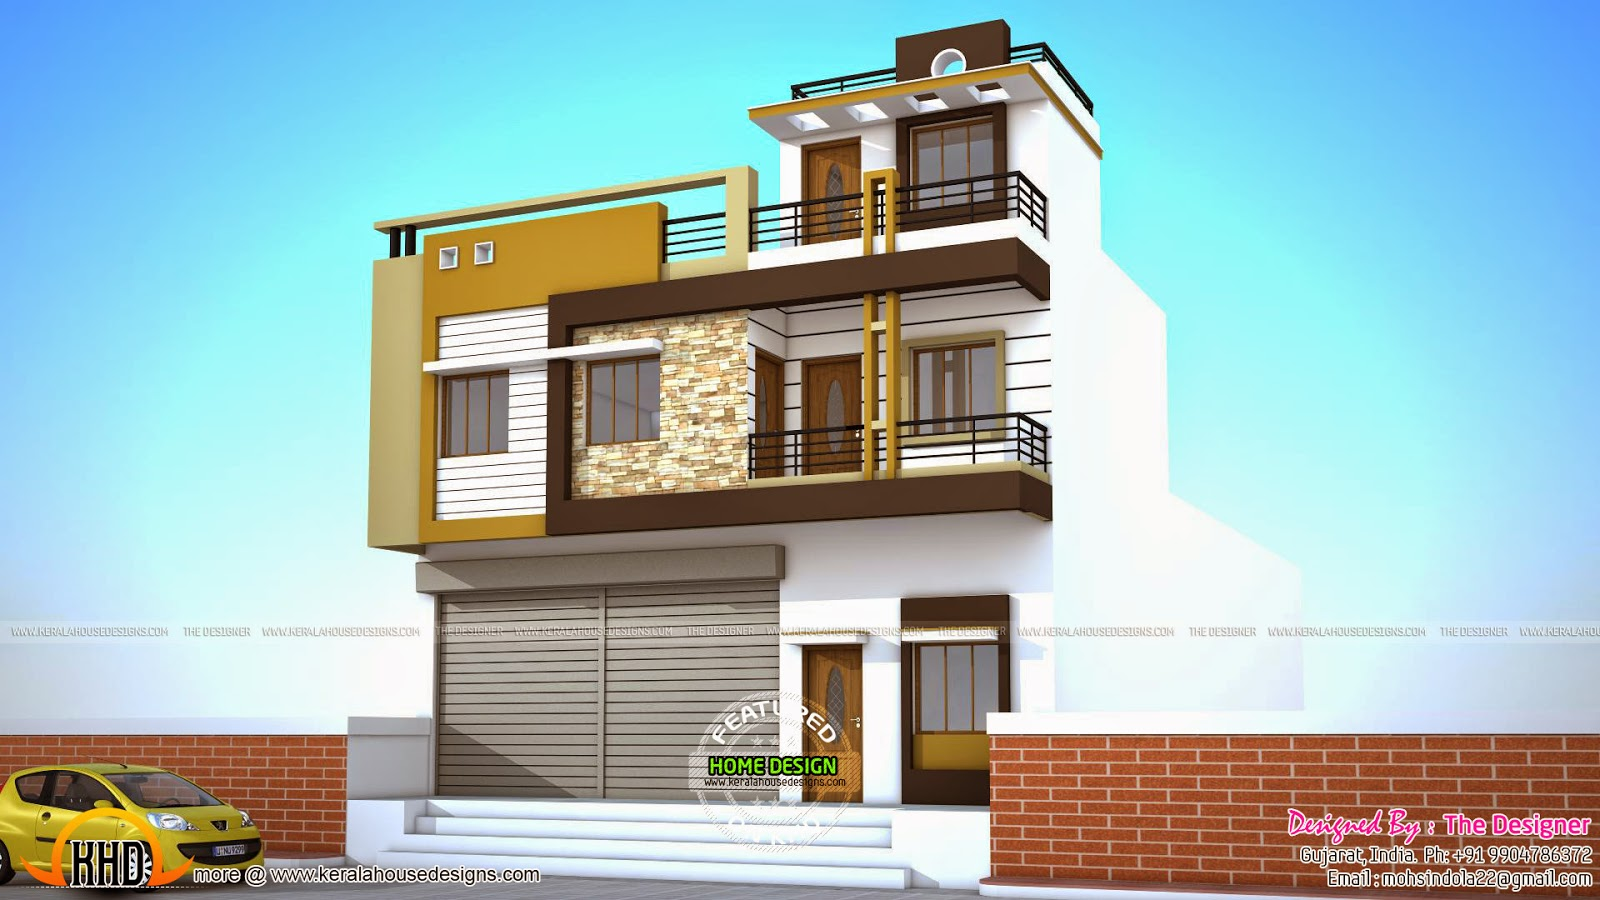 2 house plans with shops on ground floor kerala home for House blueprint designer